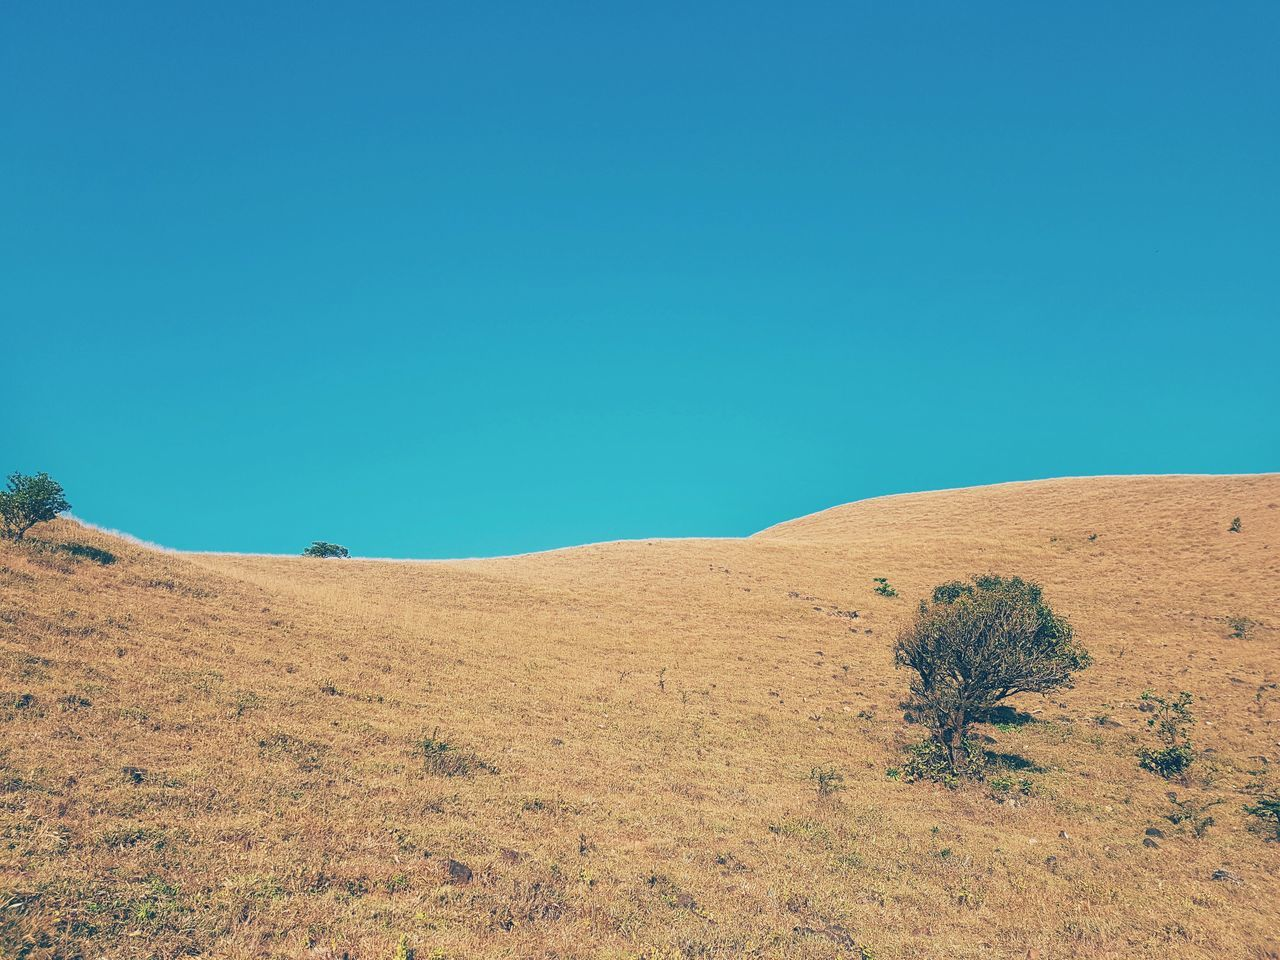 Finding New Frontiers Blue Clear Sky Sunlight Outdoors No People Sky Day Nature EyeEm Blue Skies Mobilephotography VSCO Galaxys7 India Snapseed Grasslands Grassland Tree Tones Dual